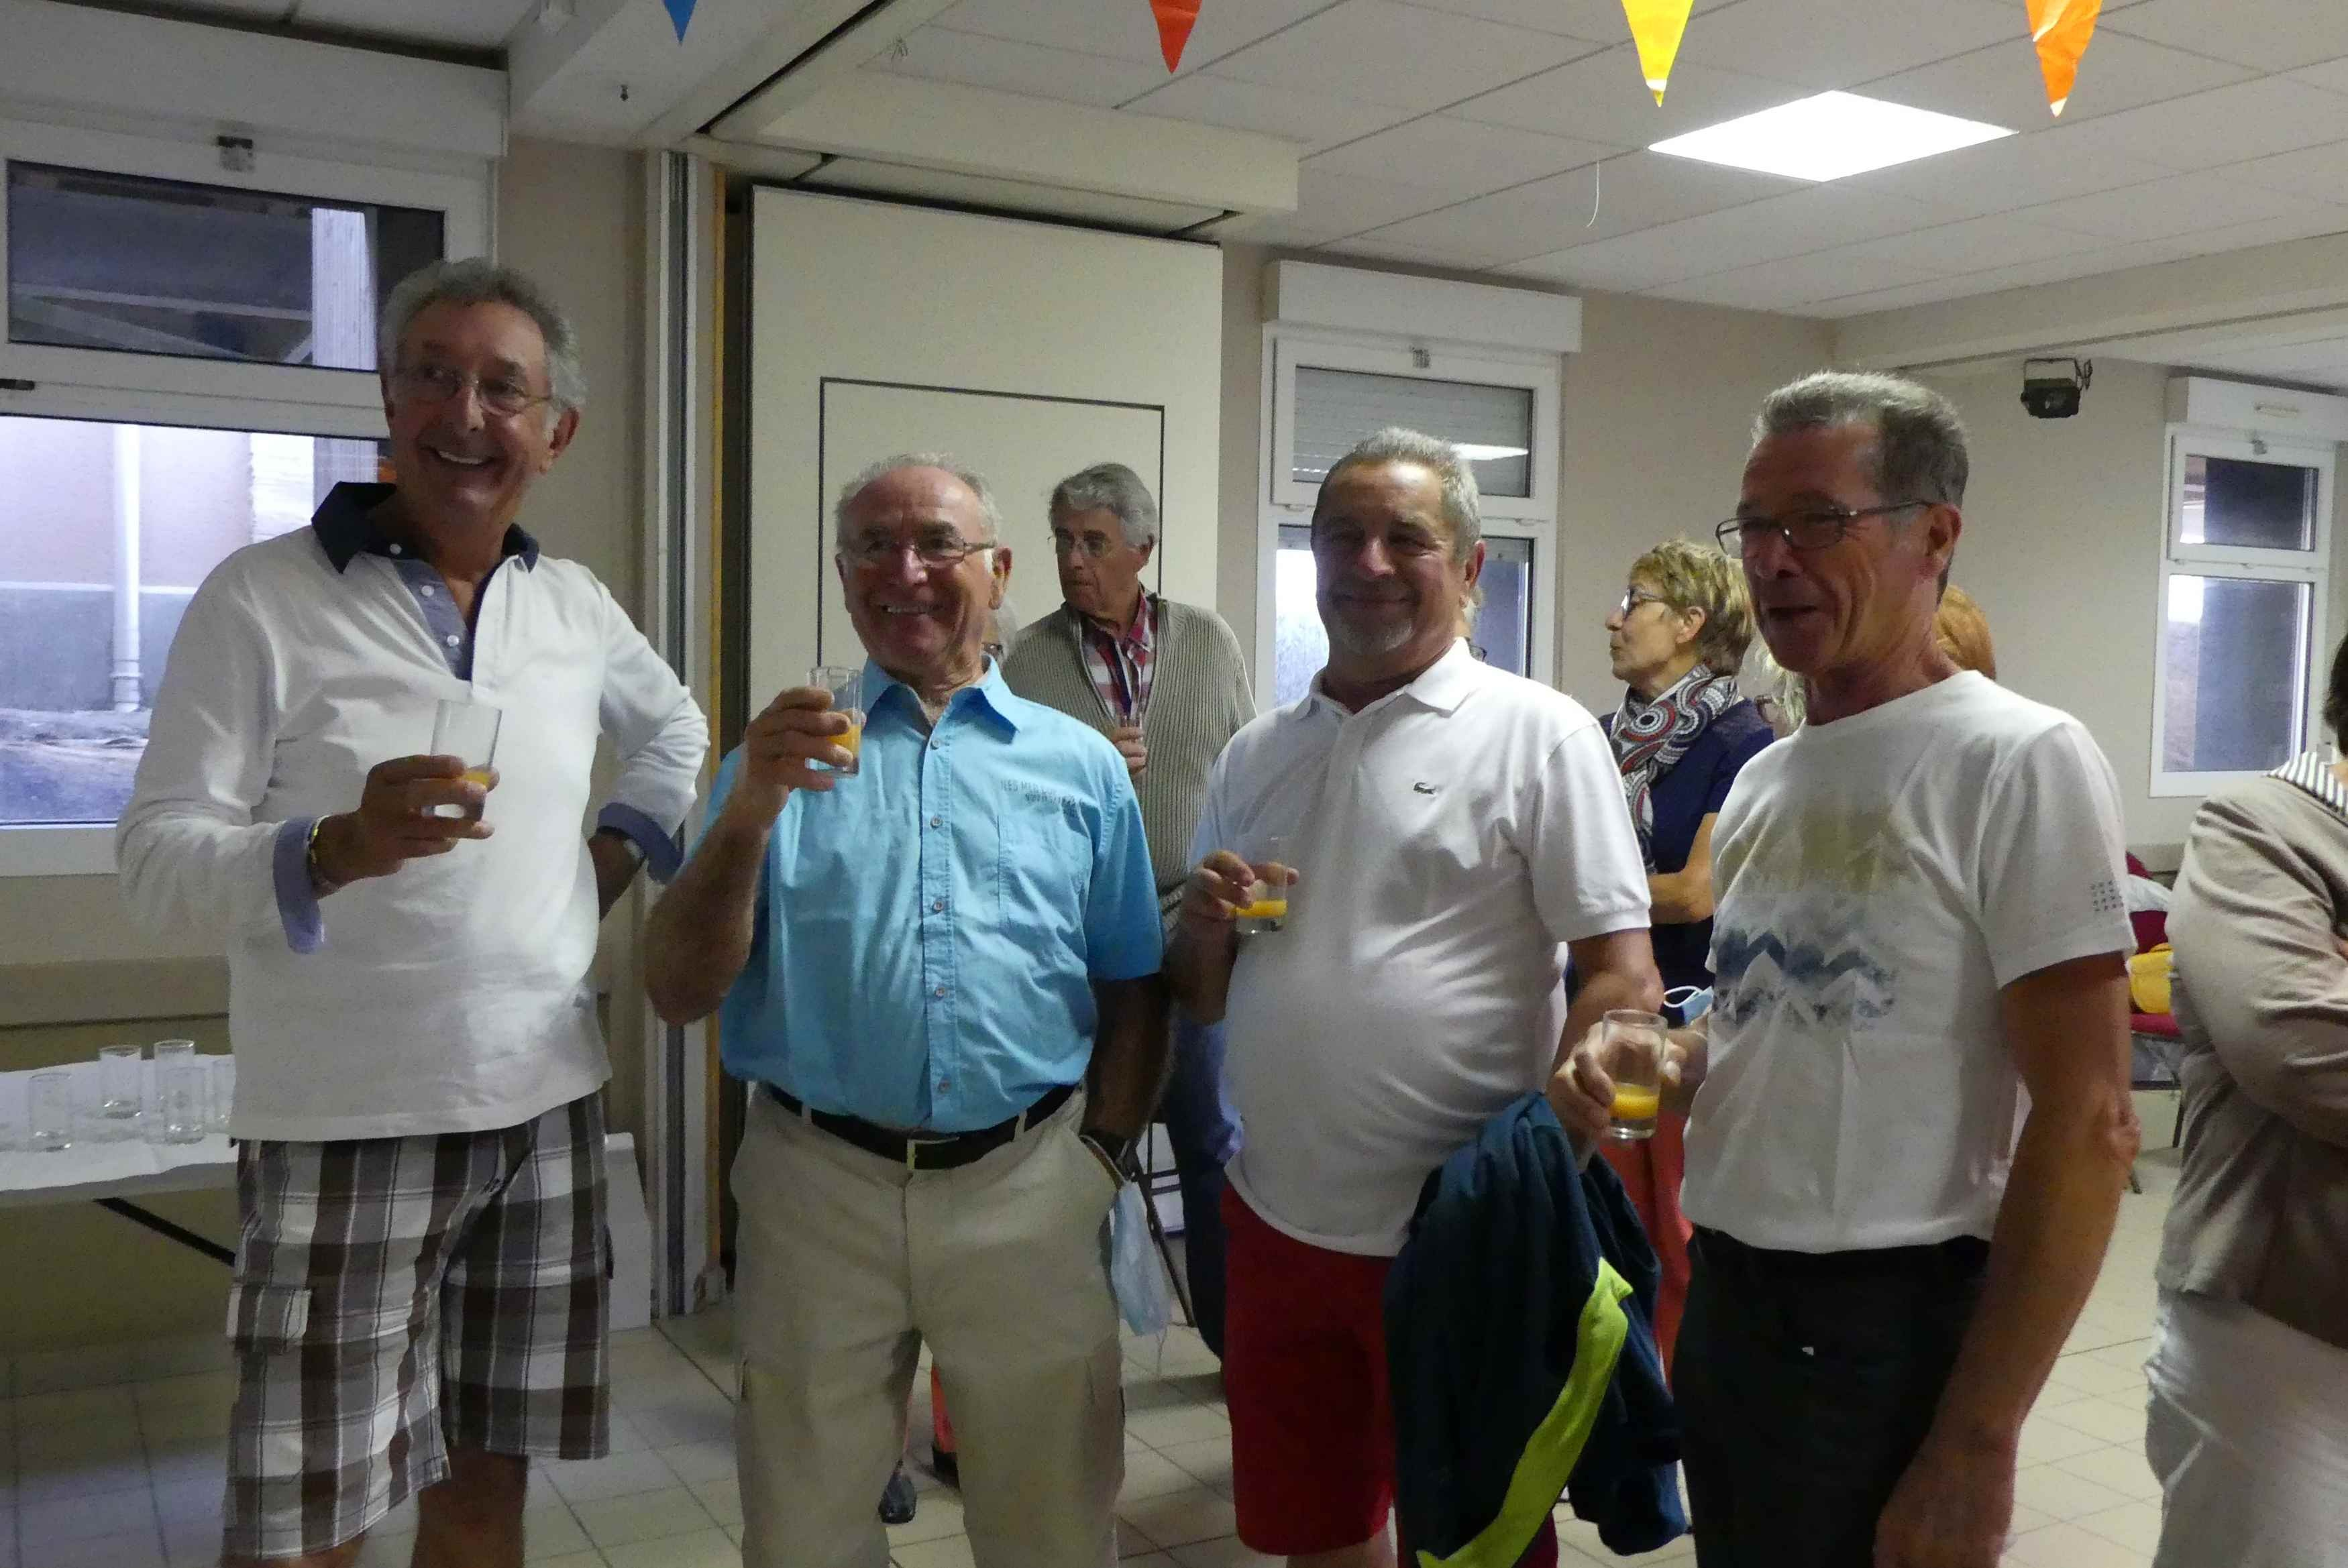 2020 09 18 4180 m soiree pot de depart normandie